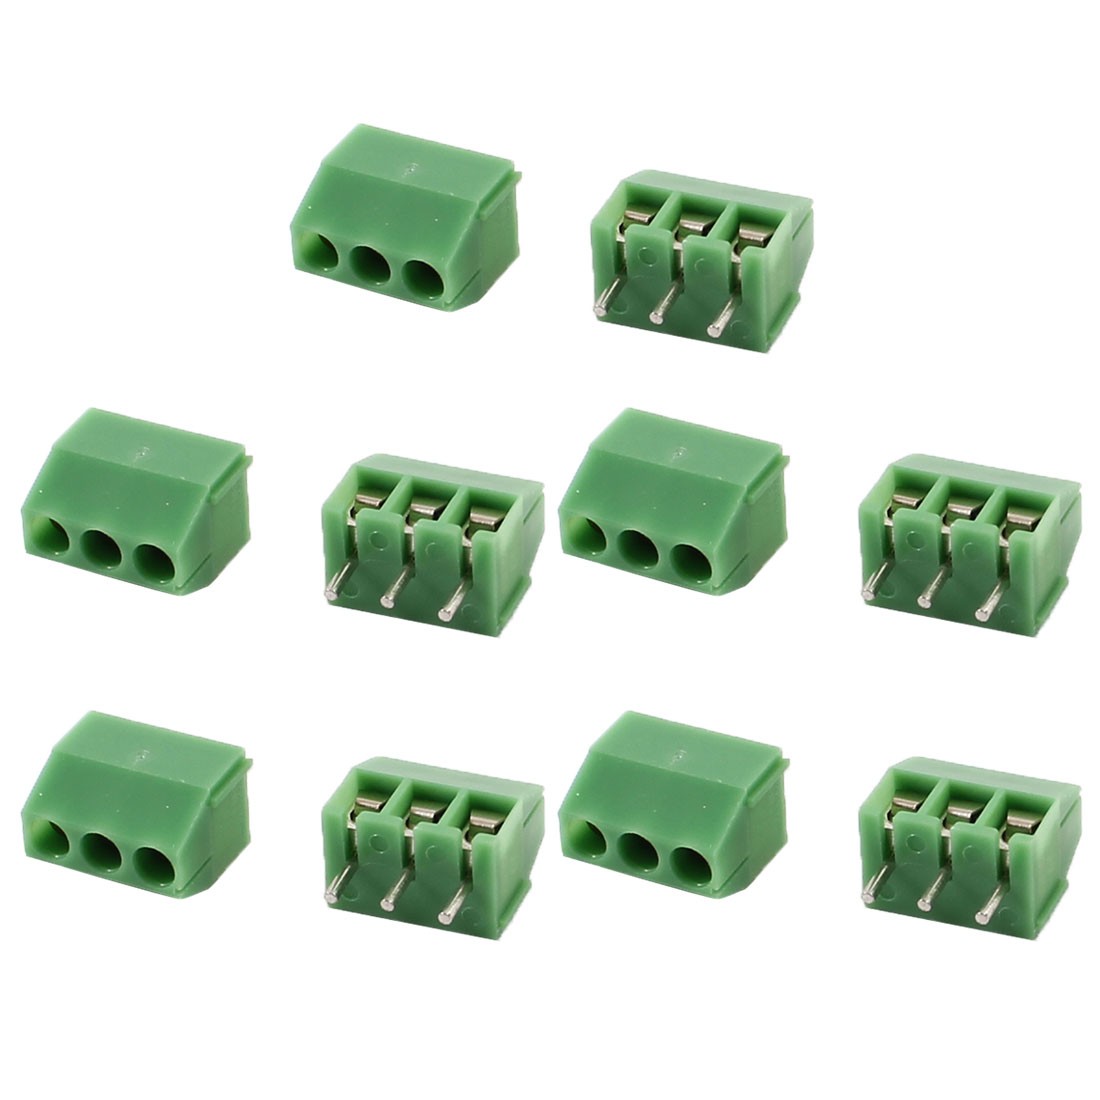 10 Pcs Straight 3 Pins 3.5mm Spacing PCB Board Screw Terminal Blocks Green